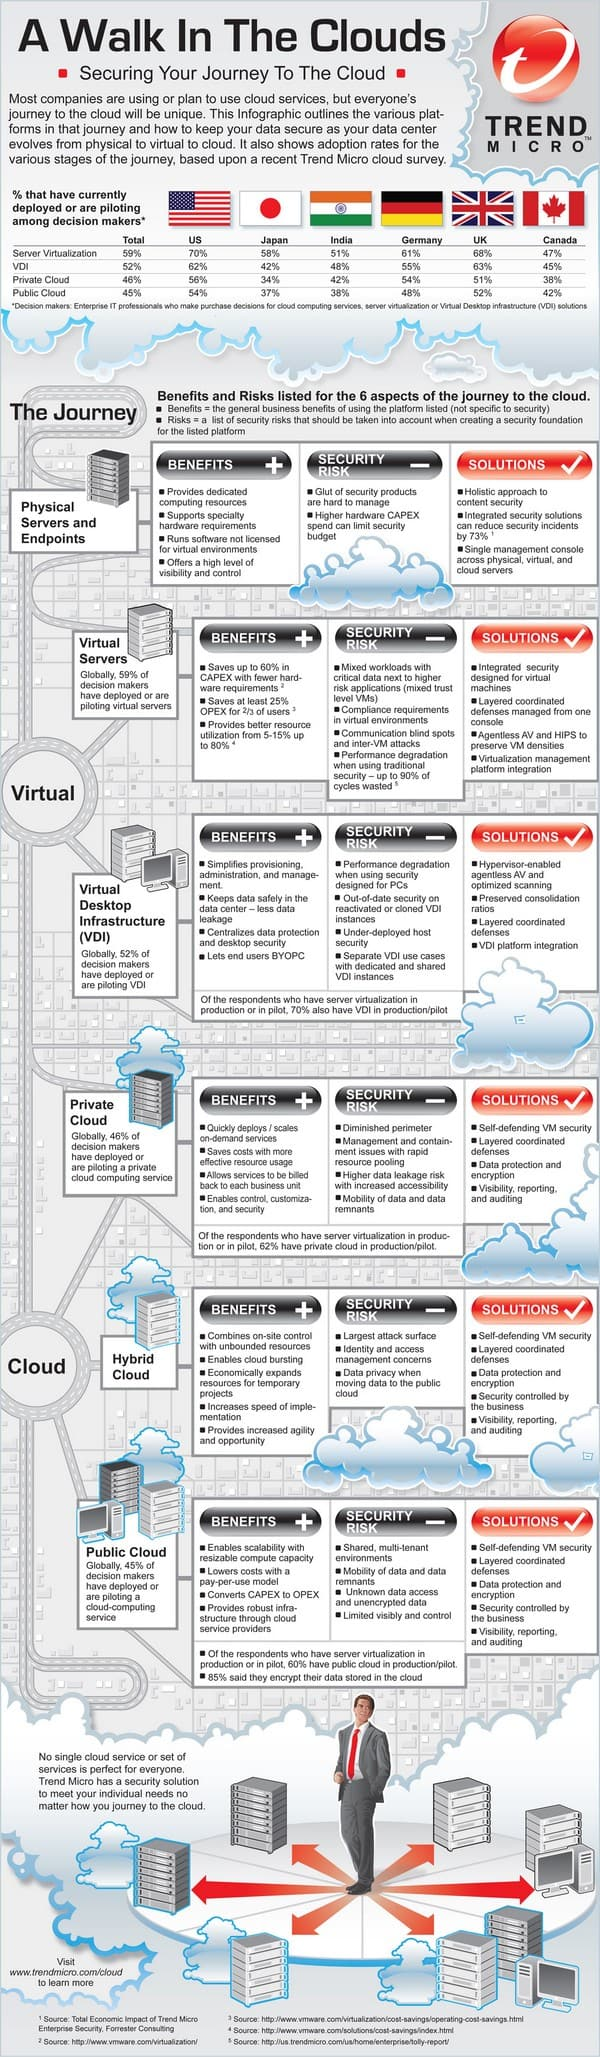 Securing Your Journey To The Cloud Infographic